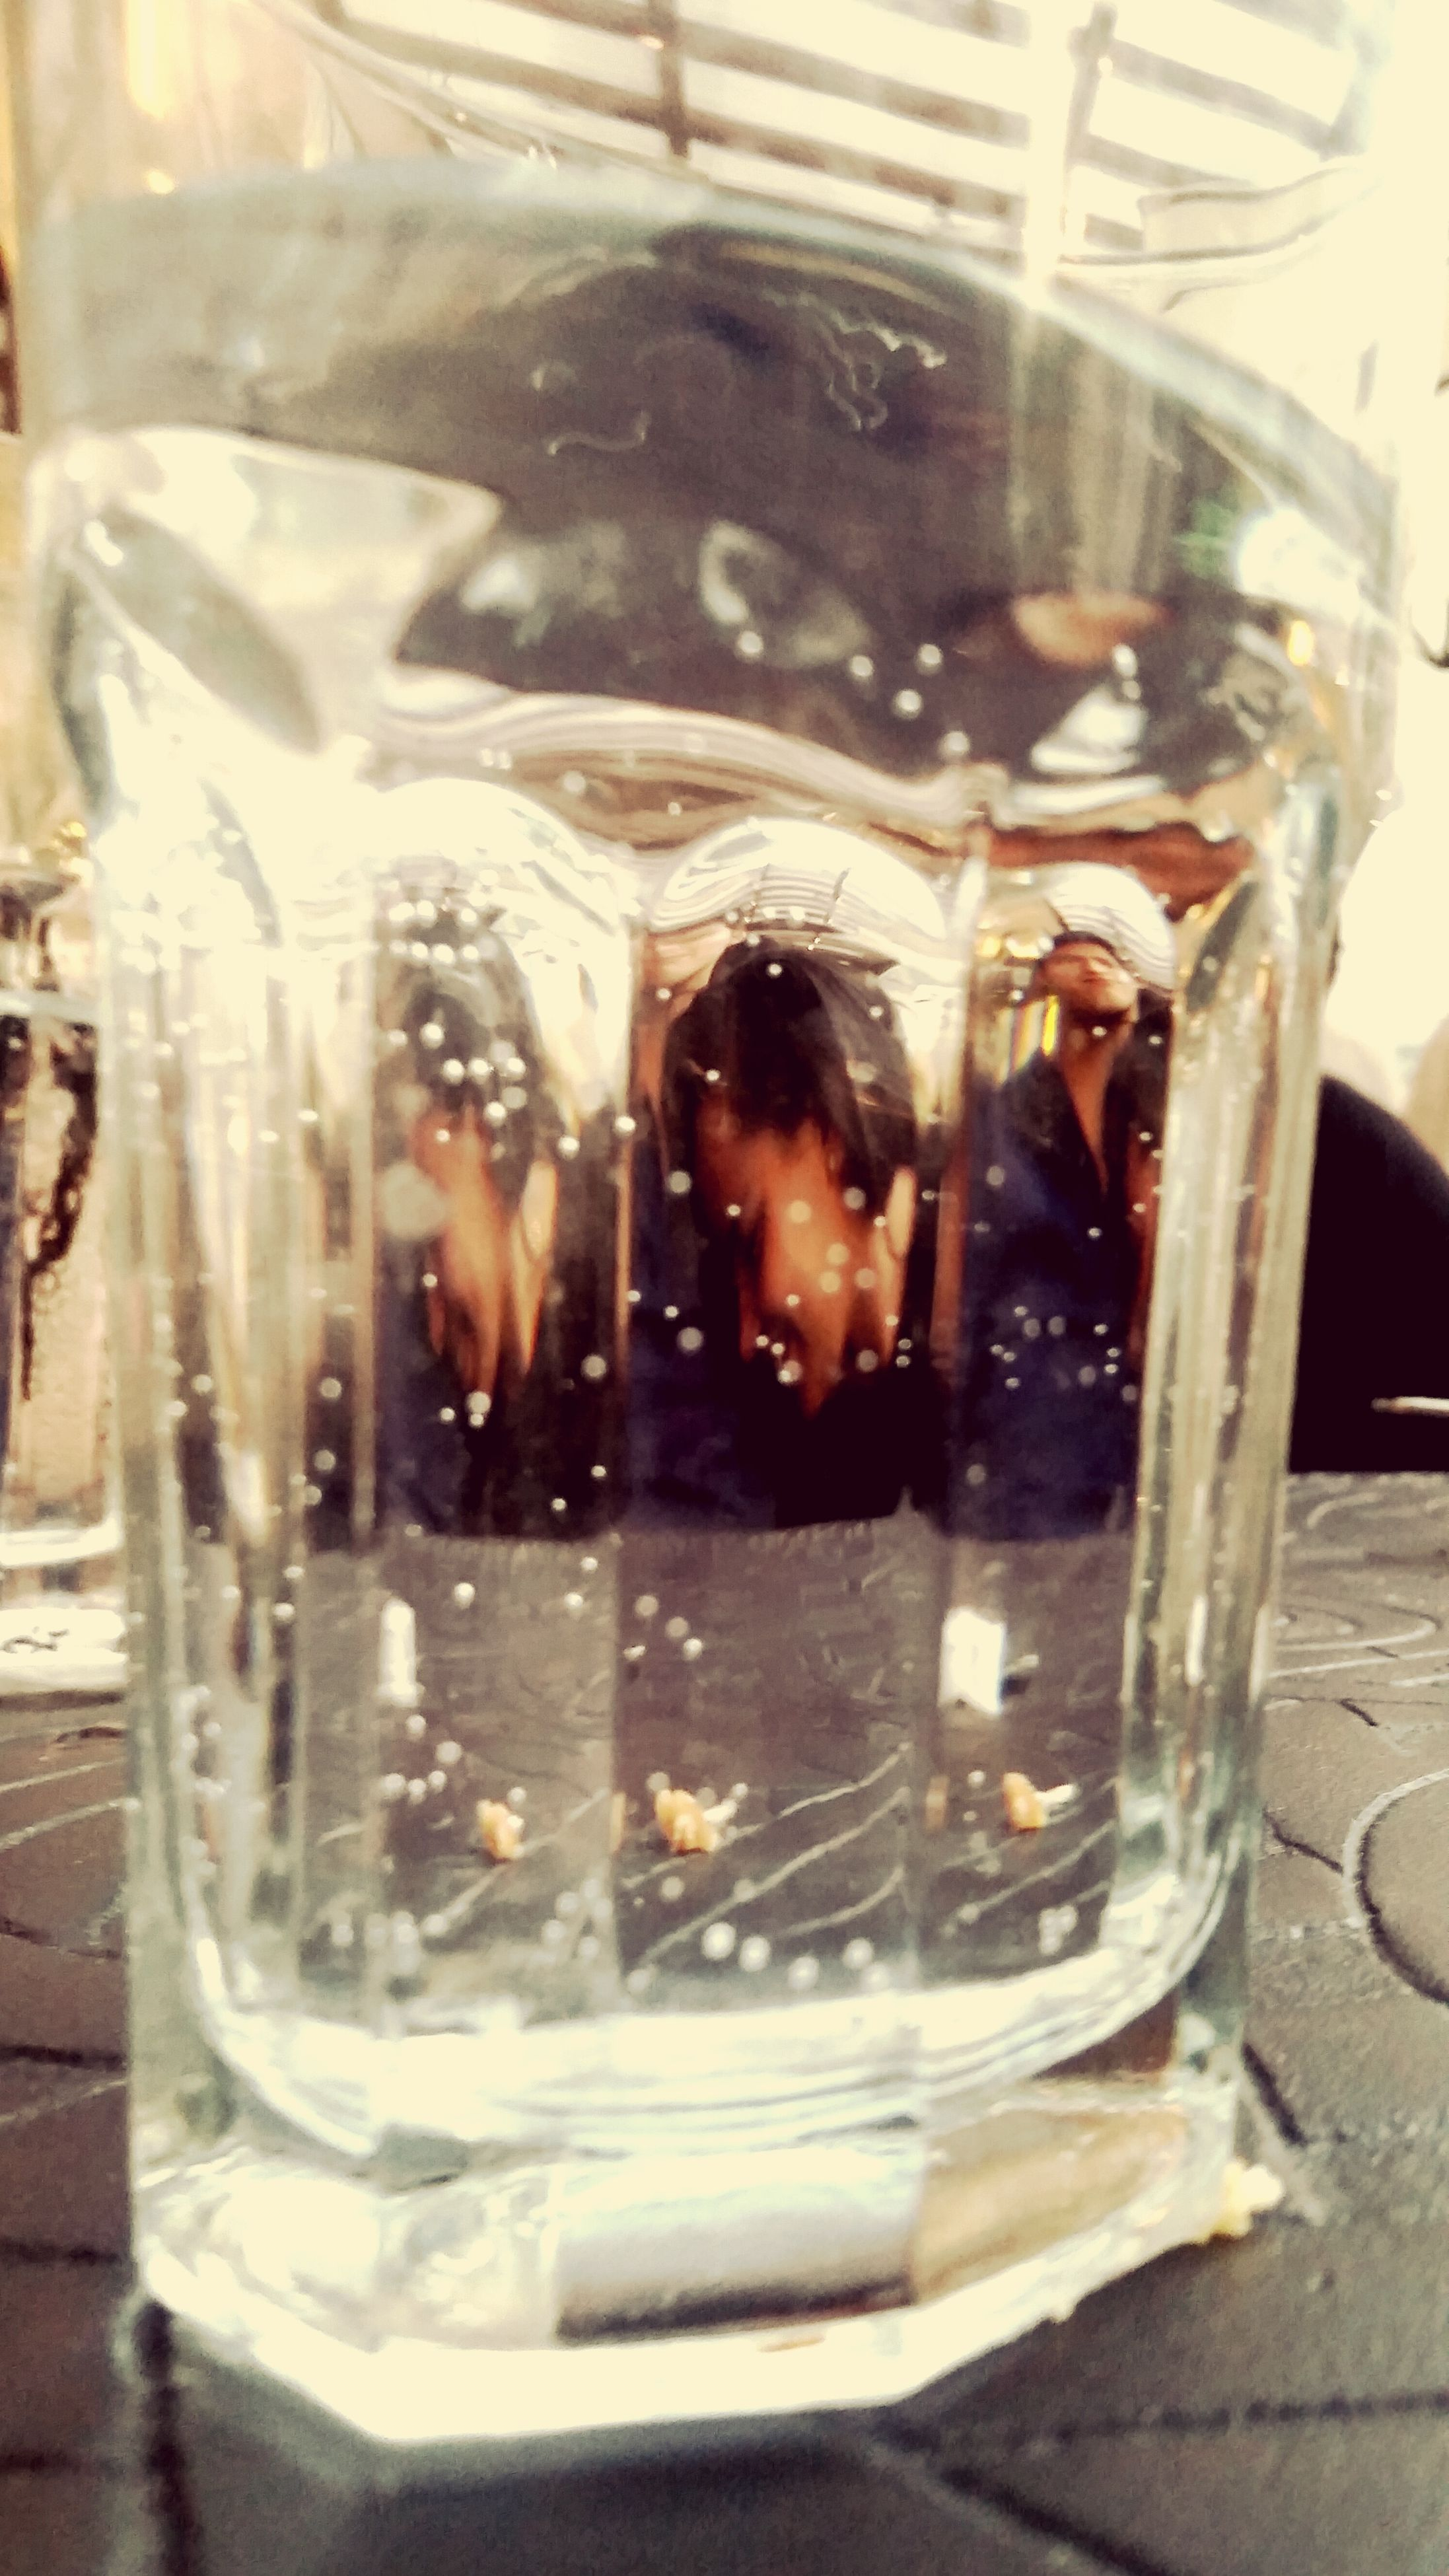 glass - material, transparent, indoors, glass, reflection, drink, window, wet, drinking glass, car, refreshment, lifestyles, food and drink, close-up, water, street, motion, leisure activity